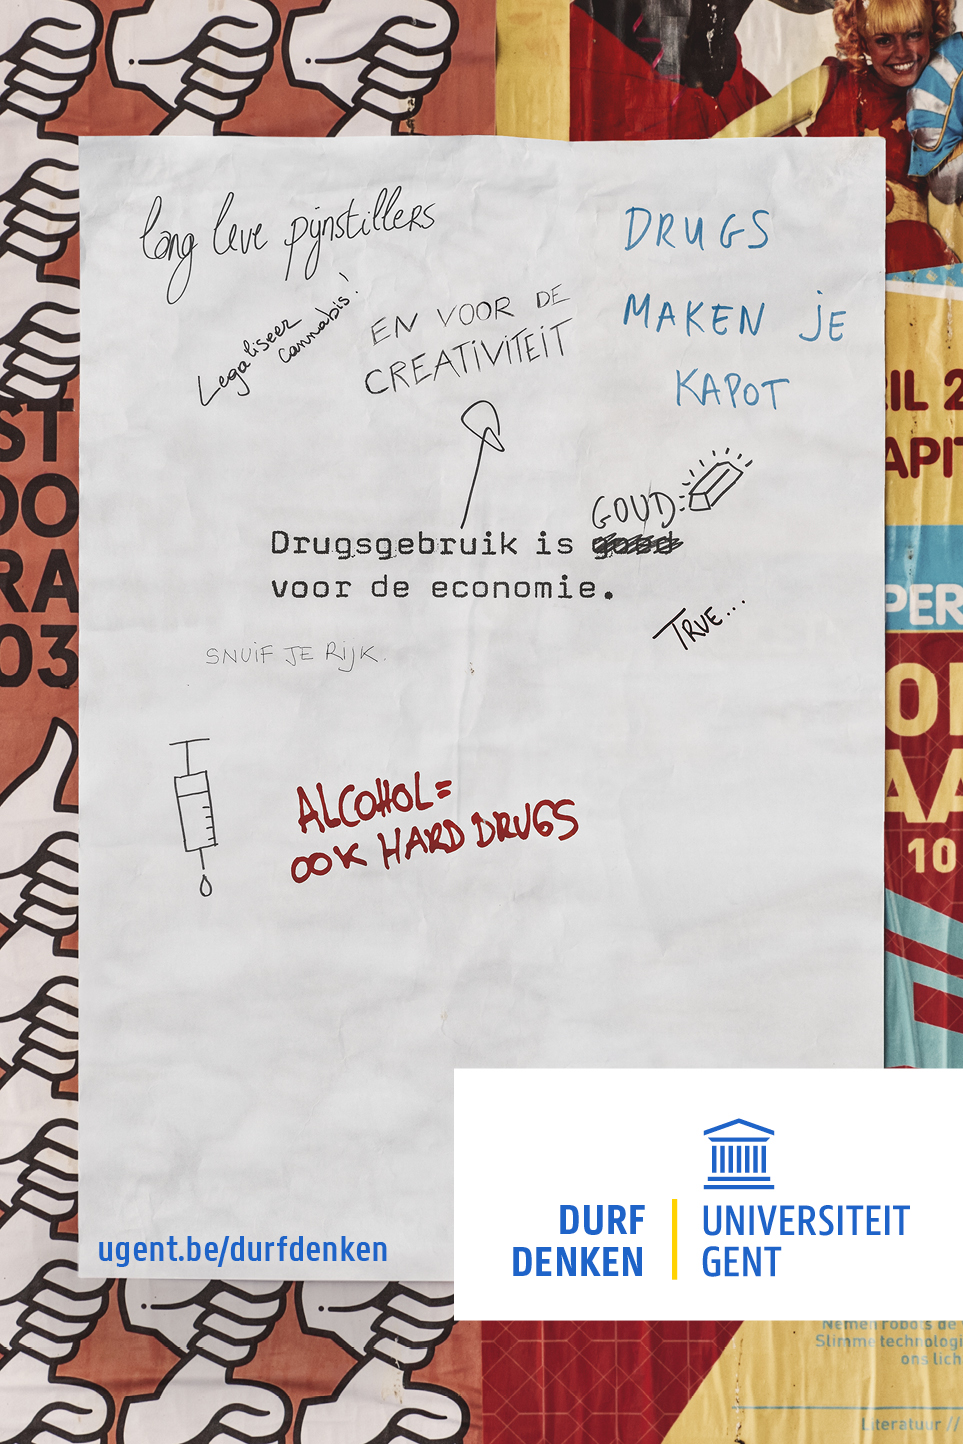 Quote over drugsgebruik